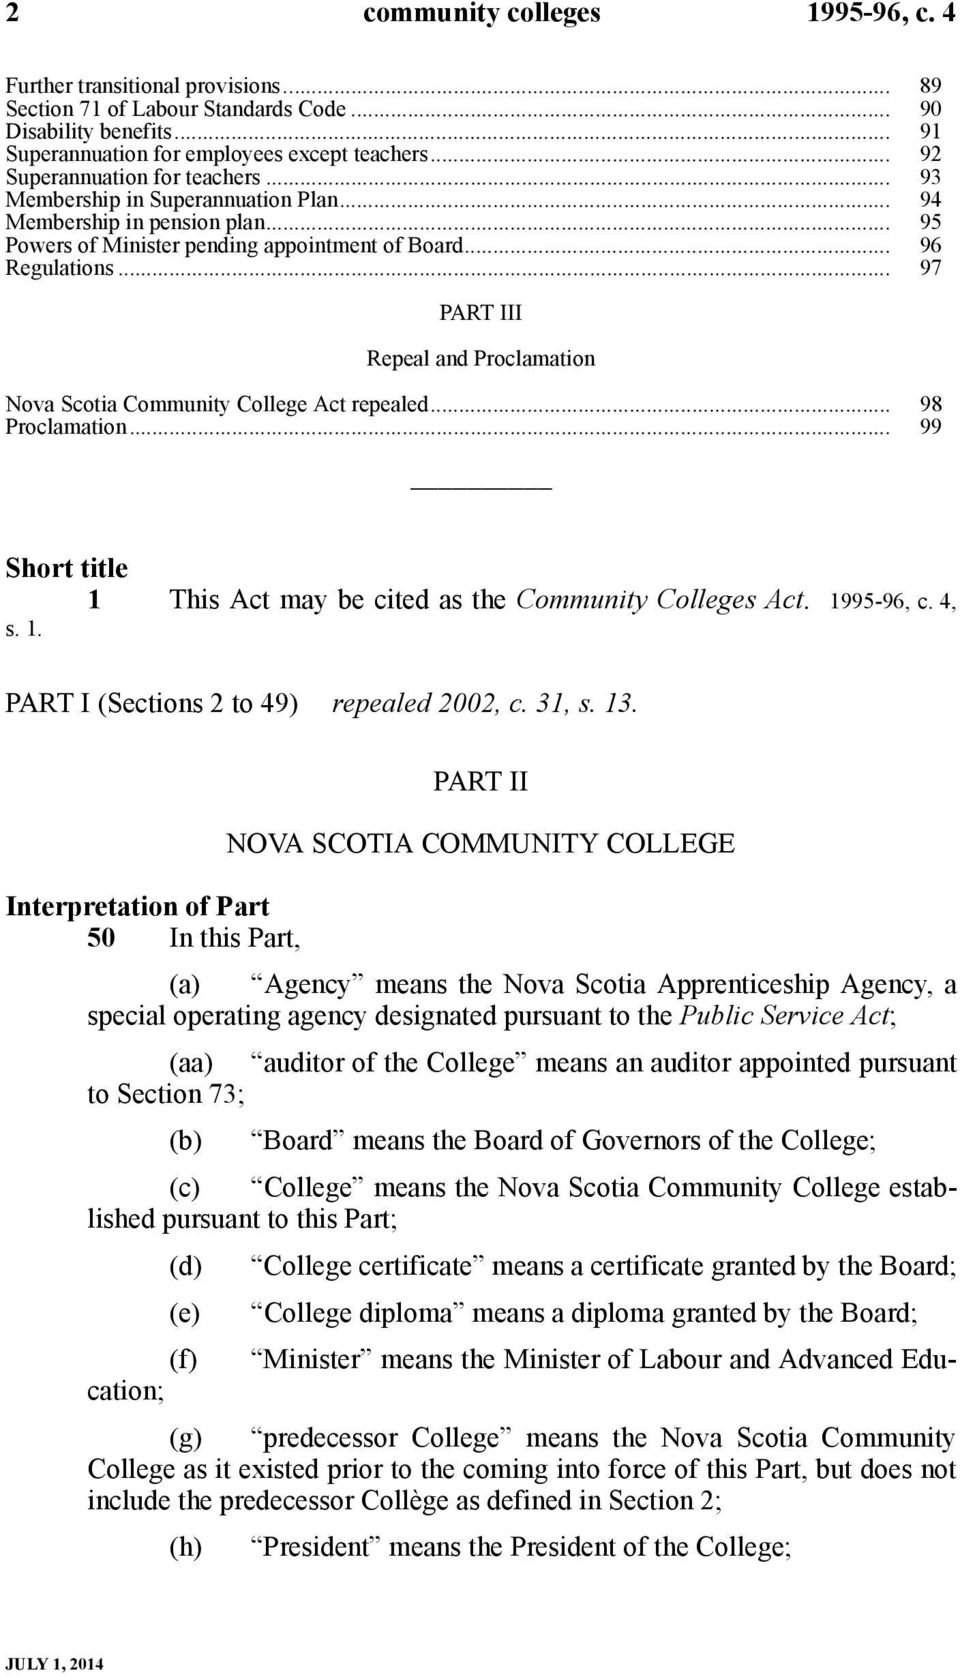 .. 97 PART III Repeal and Proclamation Nova Scotia Community College Act repealed... 98 Proclamation... 99 Short title 1 This Act may be cited as the Community Colleges Act. 1995-96, c. 4, s. 1. PART I (Sections 2 to 49) repealed 2002, c.